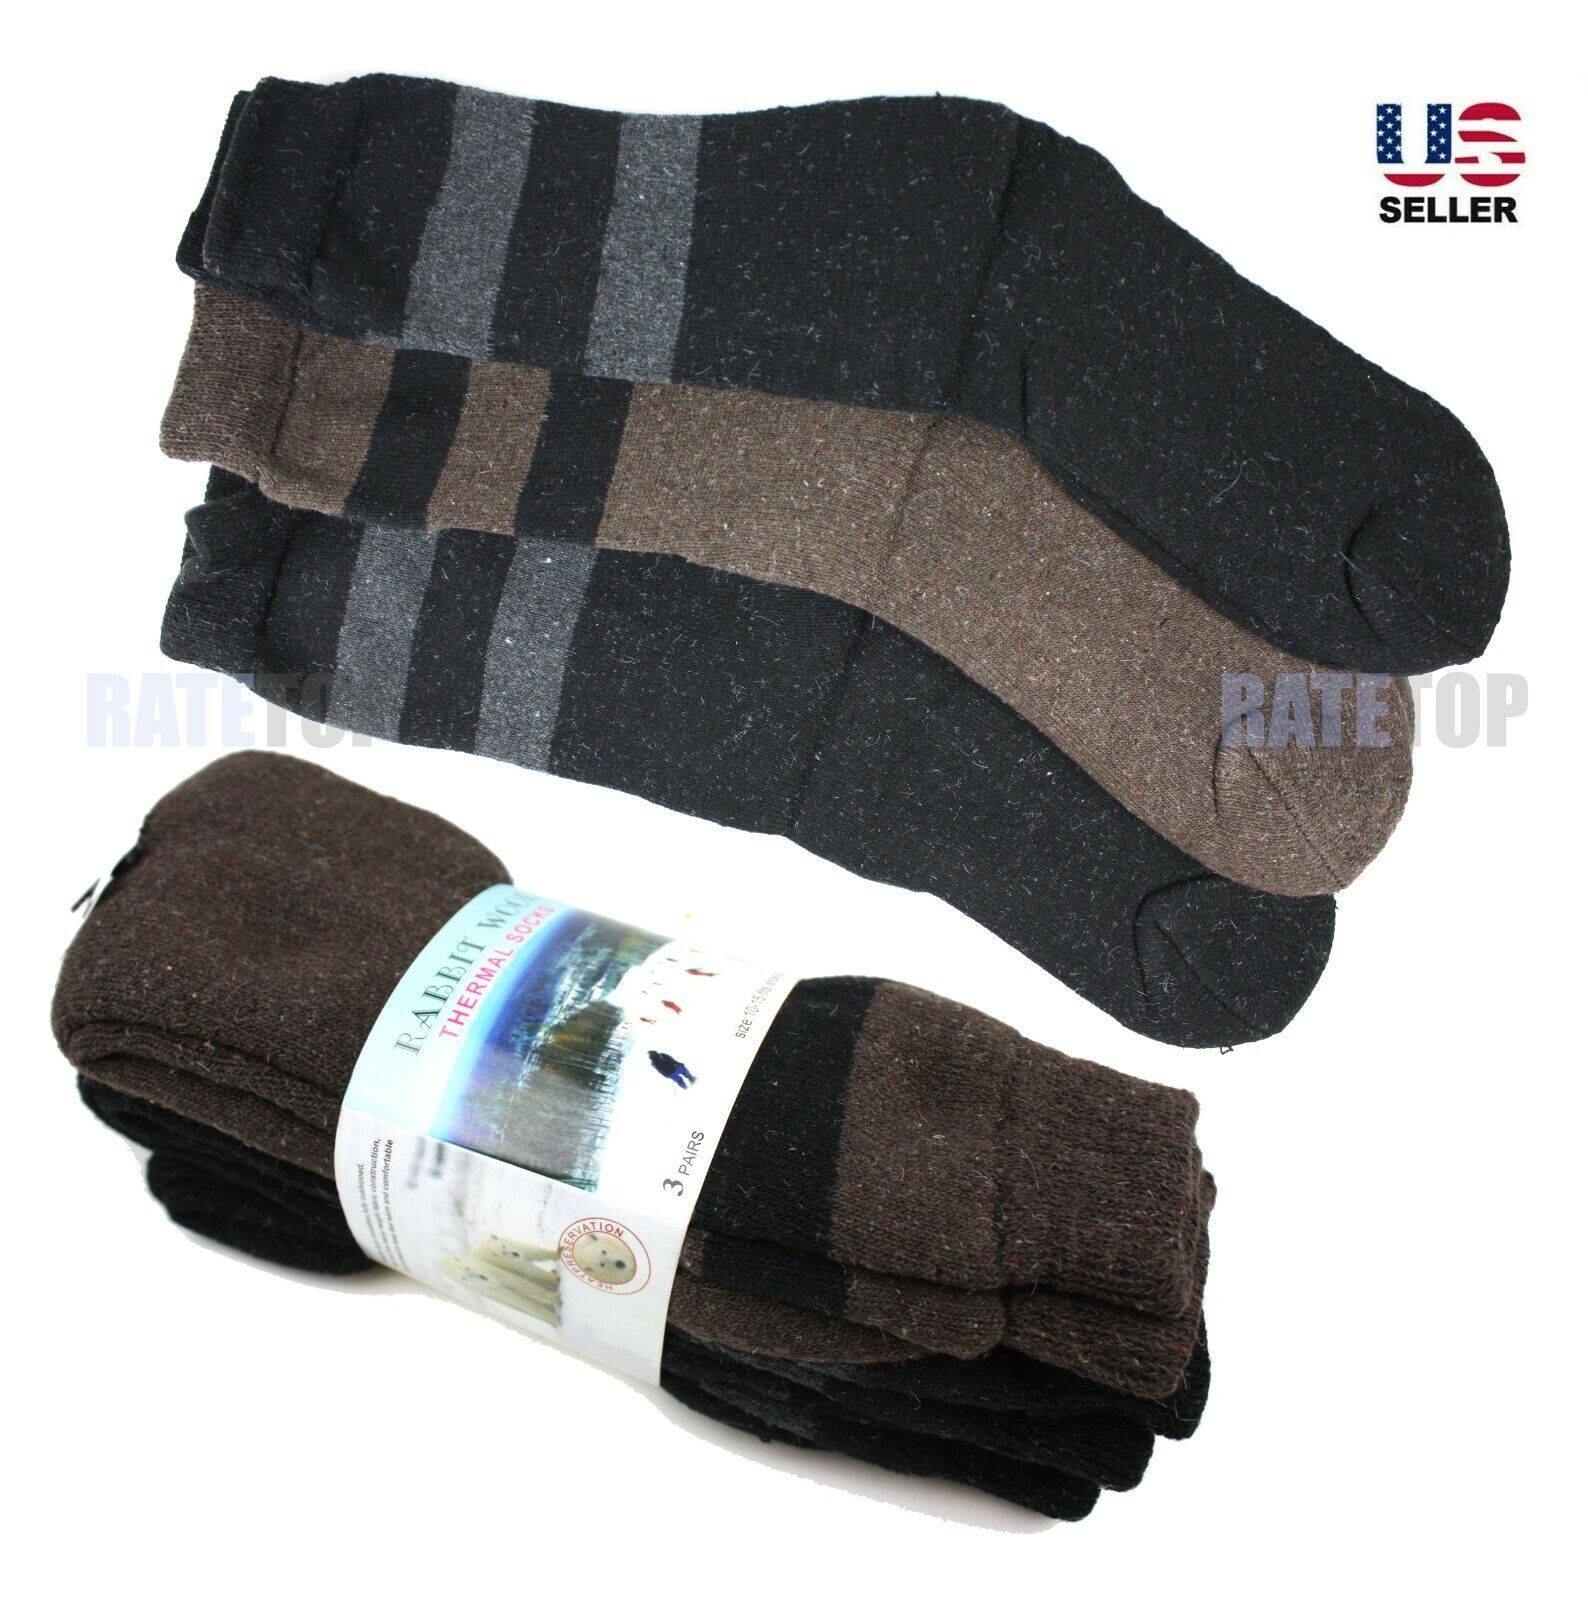 3 Pairs Mens Winter Heavy Duty Thermal Wool Crew Boots Socks Extra Warm 10-15 Clothing, Shoes & Accessories